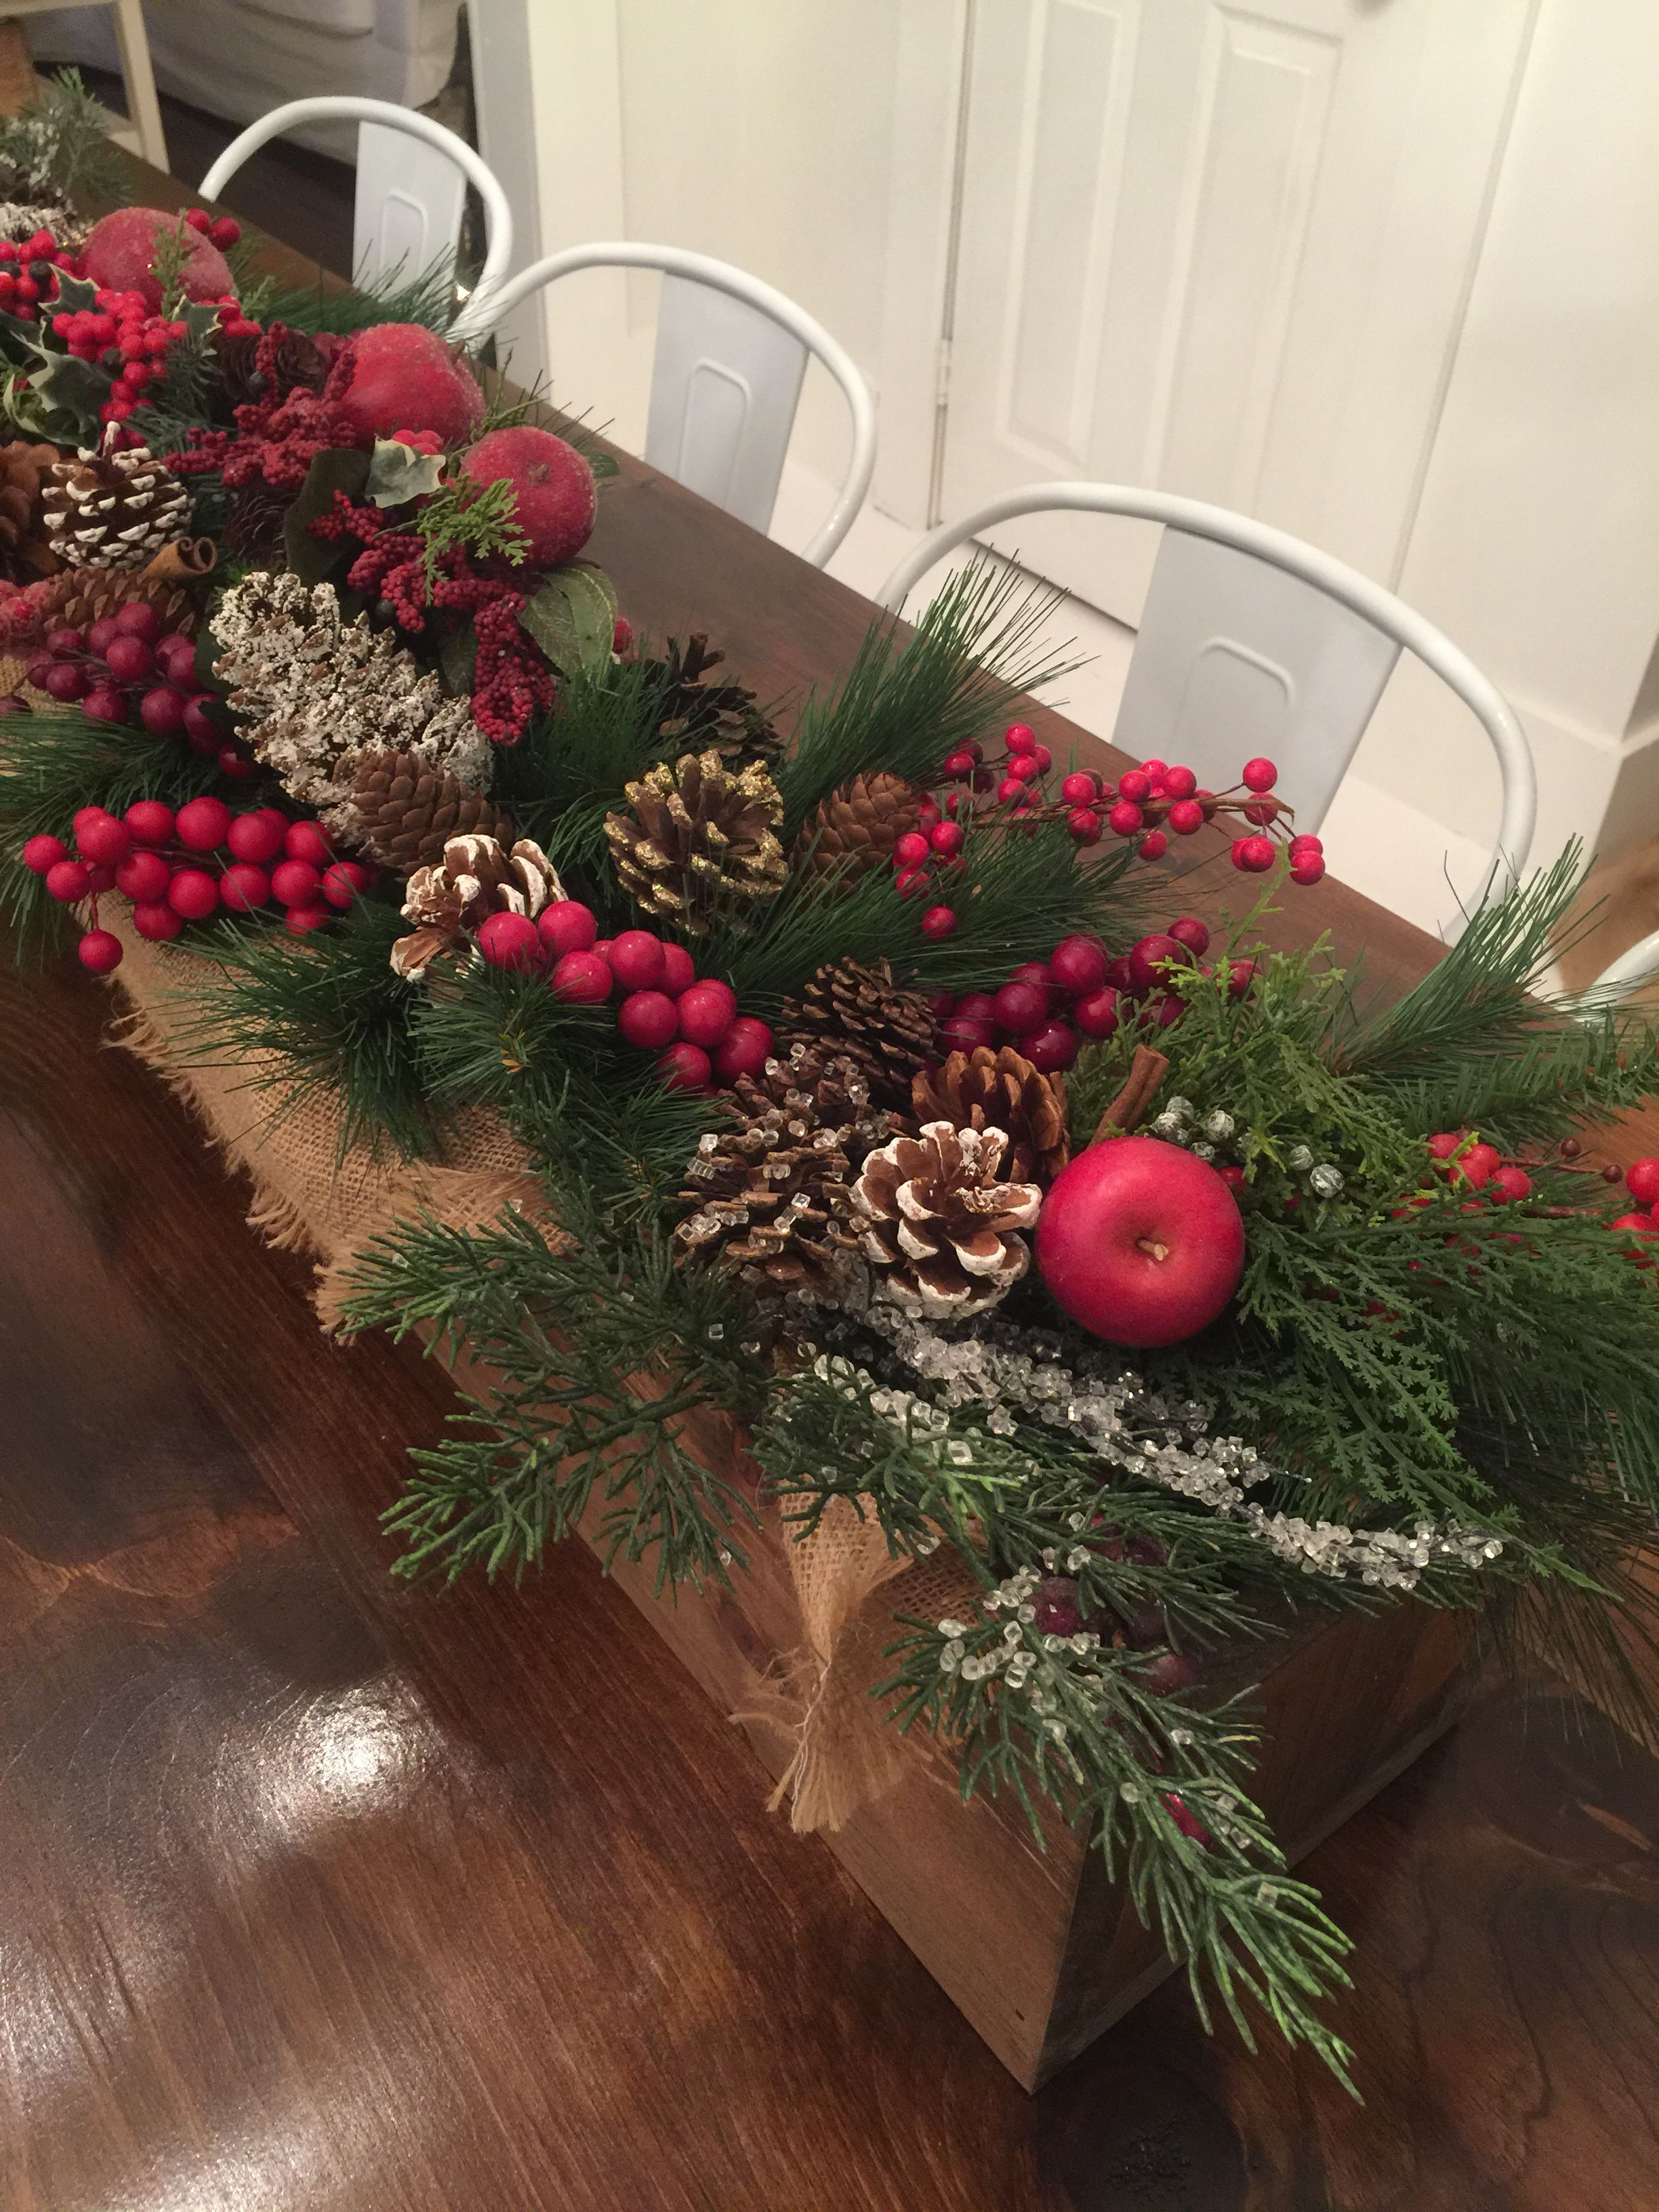 wooden box christmas centerpiece with burlap berries greenery pine cones apples - Wooden Box Christmas Decorations